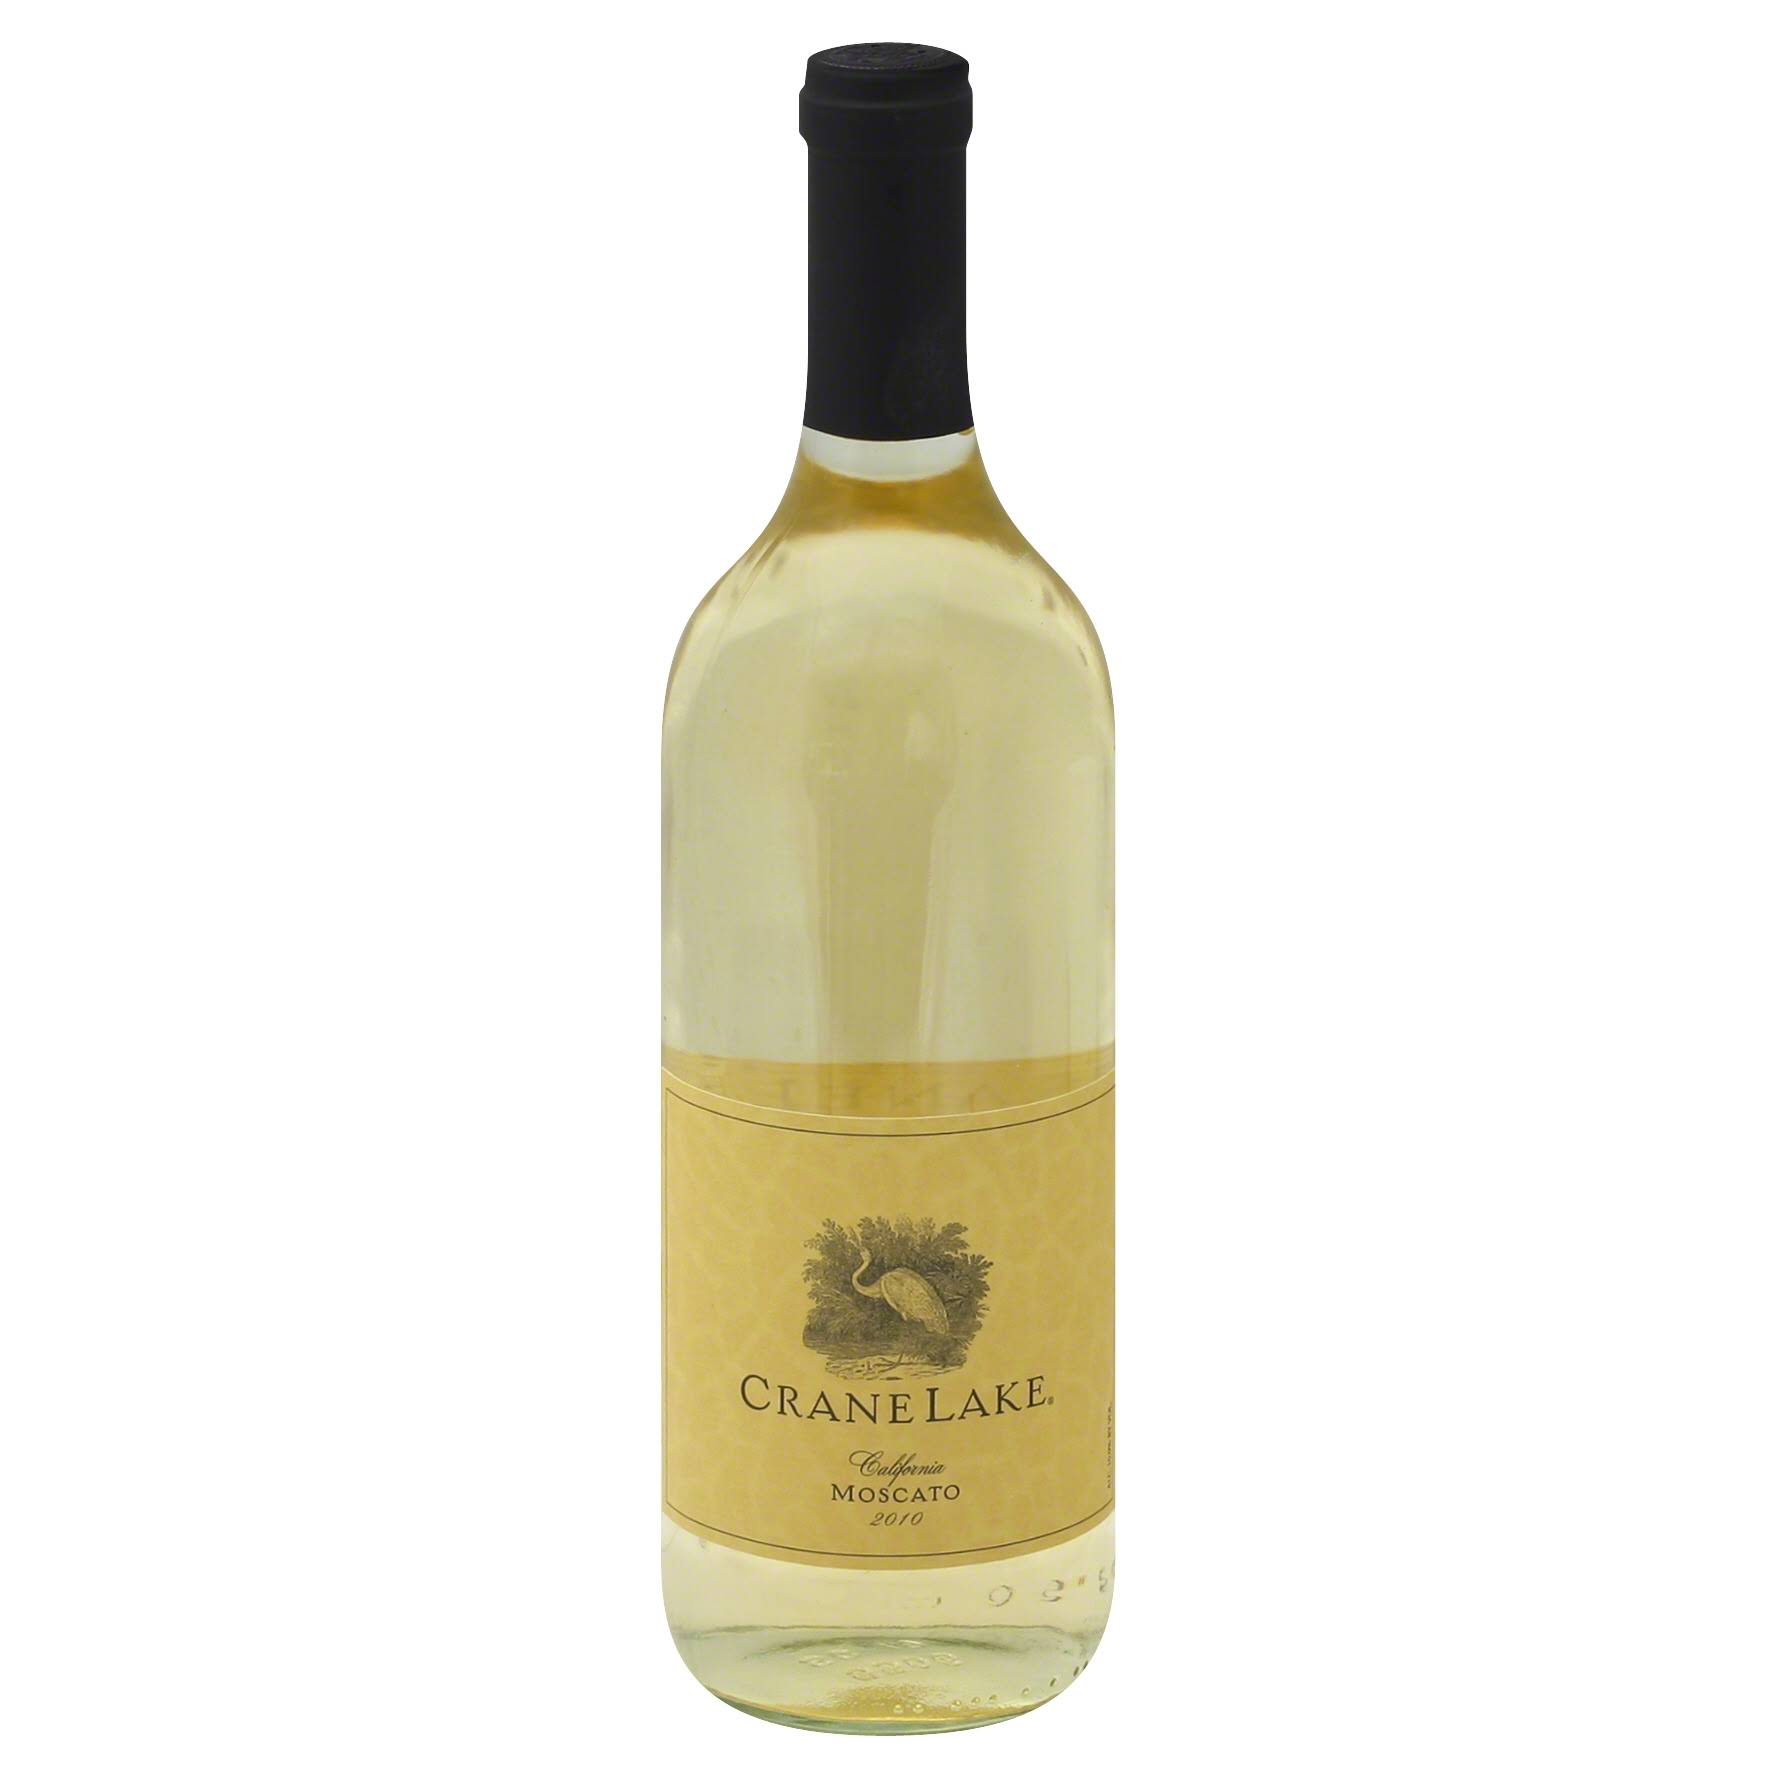 Crane Lake Moscato, California, 2010 - 750 ml